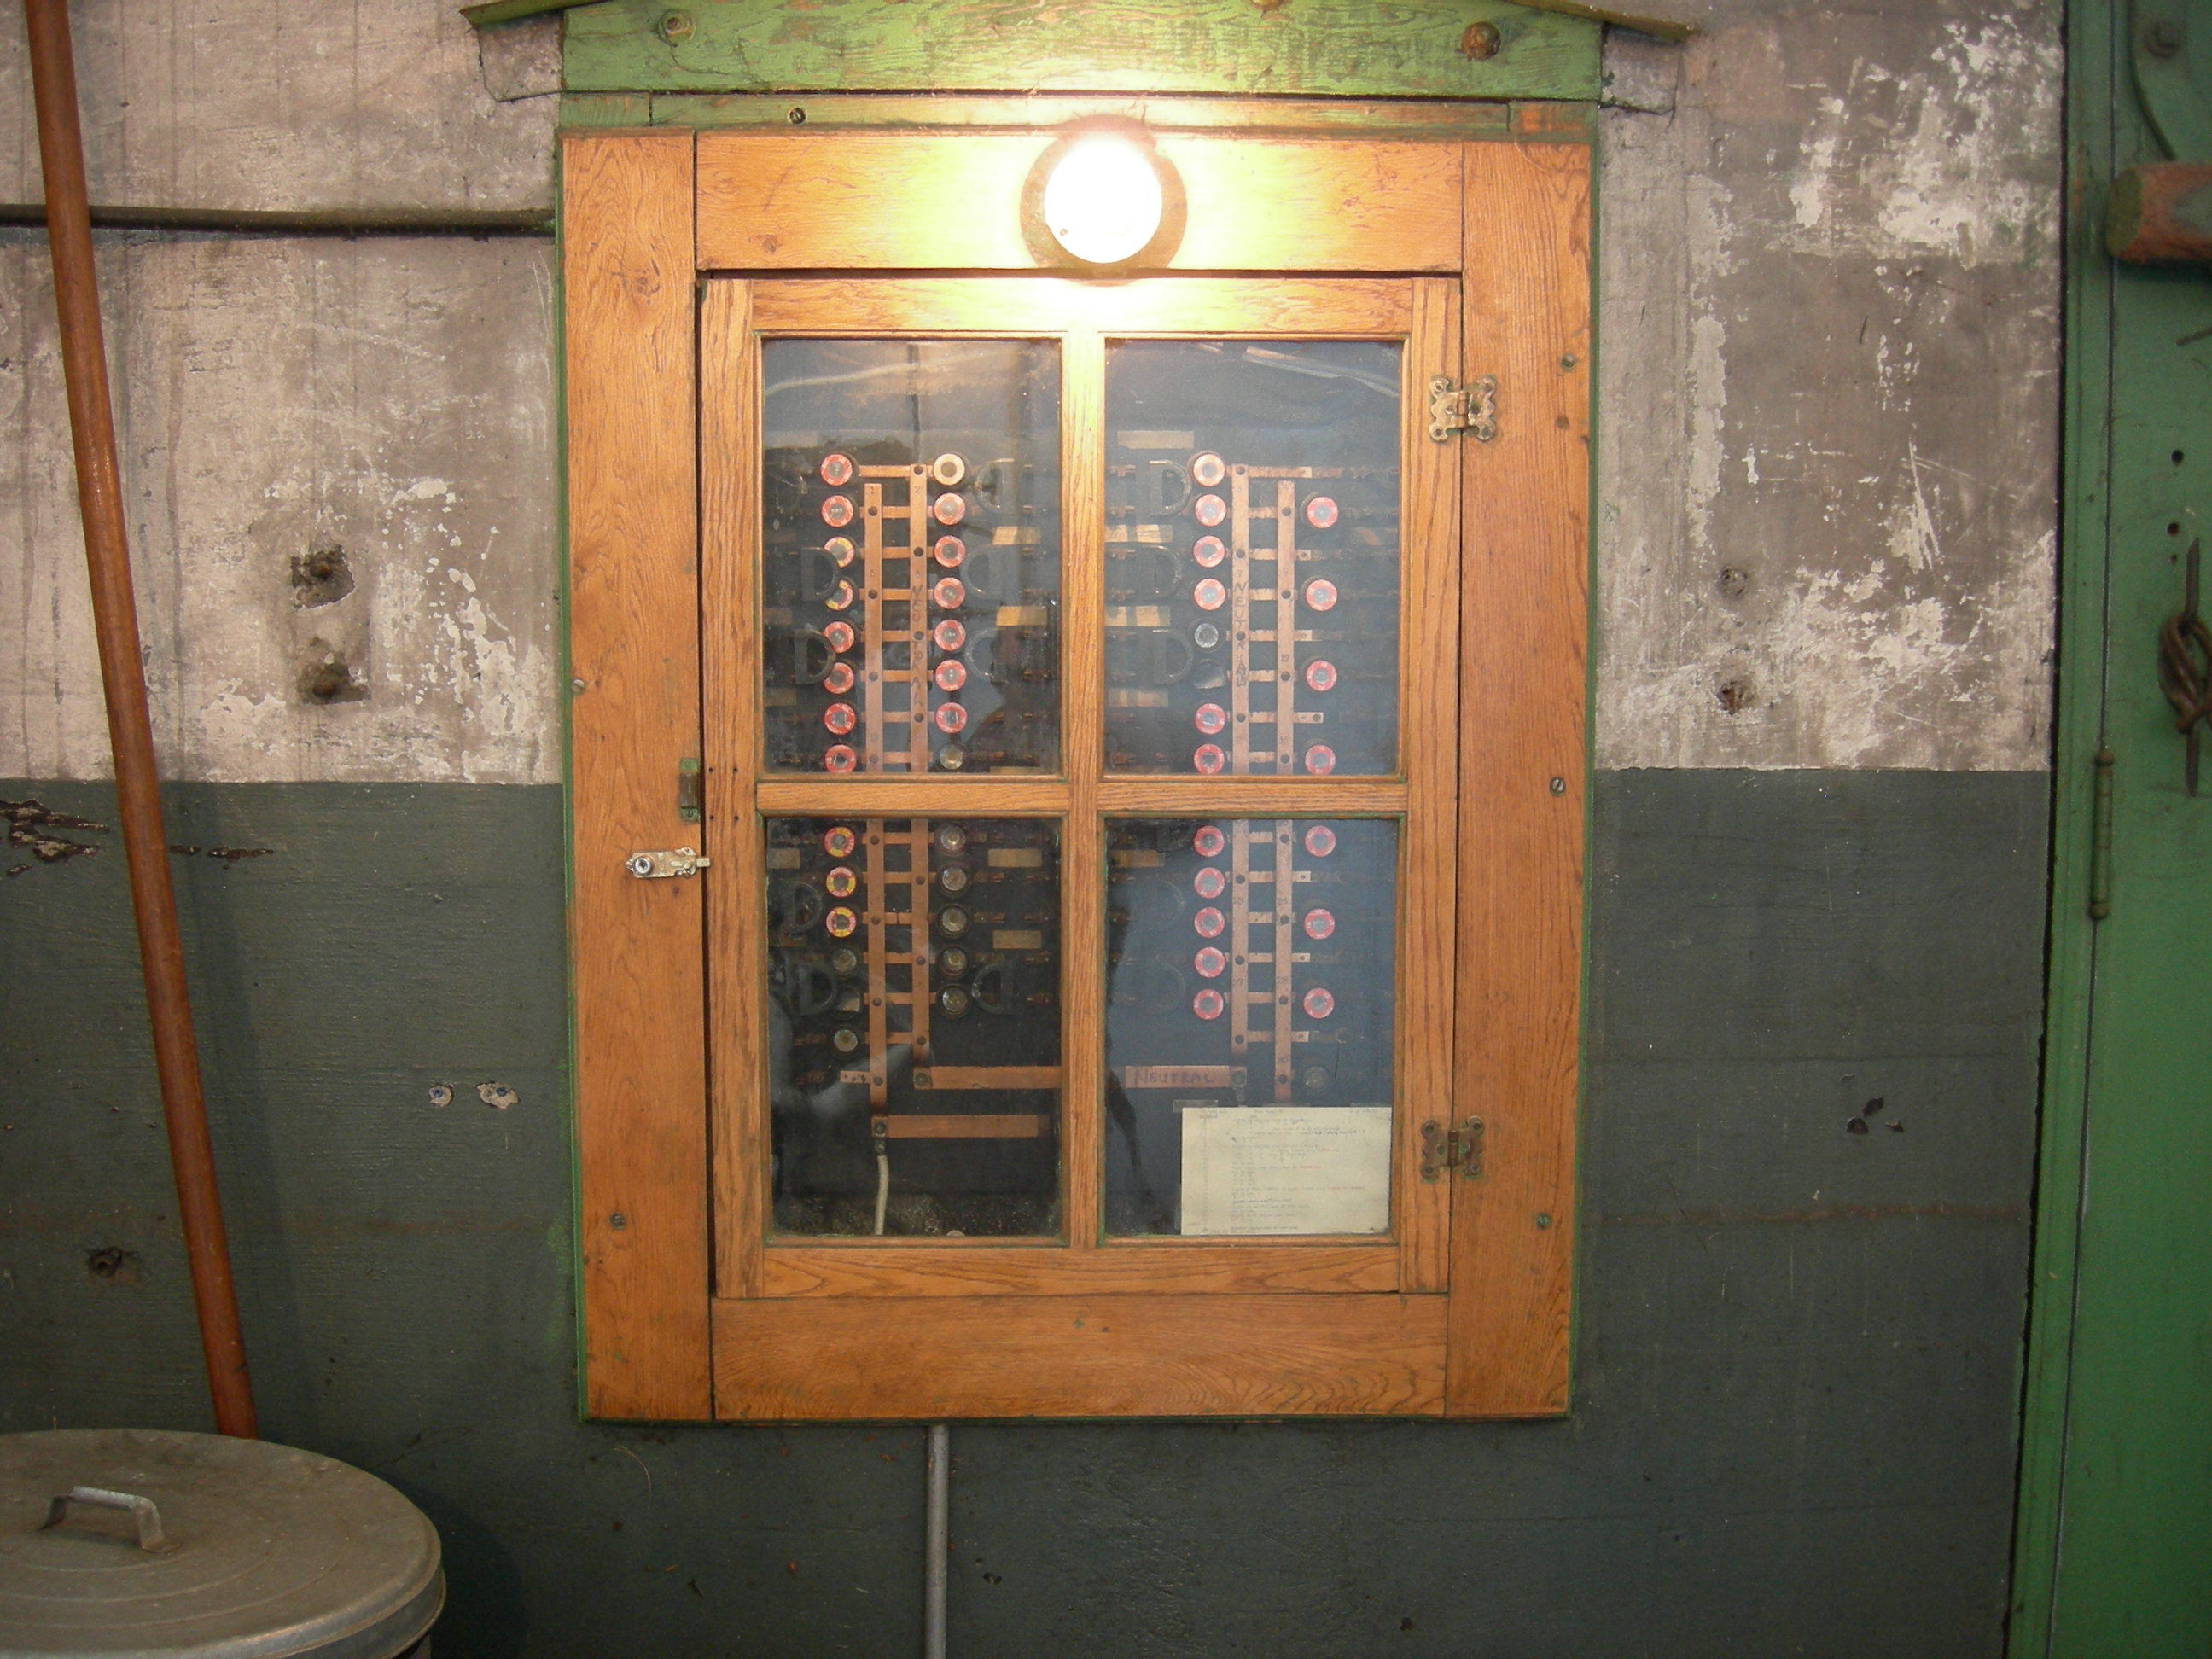 VY_8306] Antique Fuse Box With Fuses Download DiagramTool Rally Peted Unbe Sapre Oxyt Olyti Socad Stic Jebrp Dome Kapemie Ndine  Joami Hyedi Mohammedshrine Librar Wiring 101